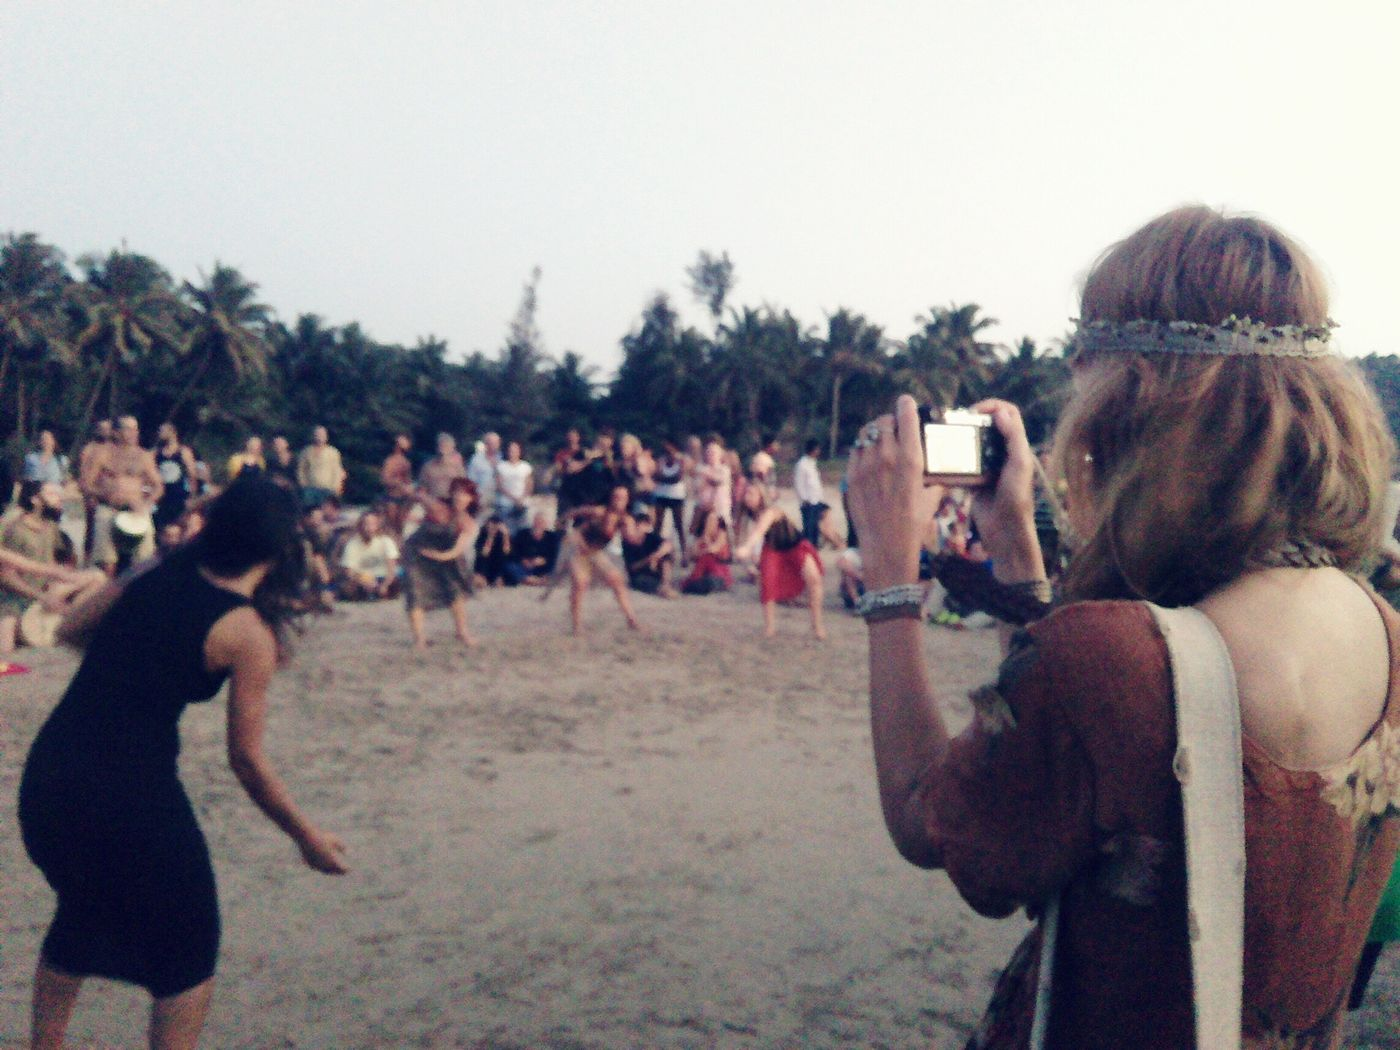 Beach Dancer Dancing In The Beach Dancing Girls Flashmob Beach Life Beach Photography Beach Party